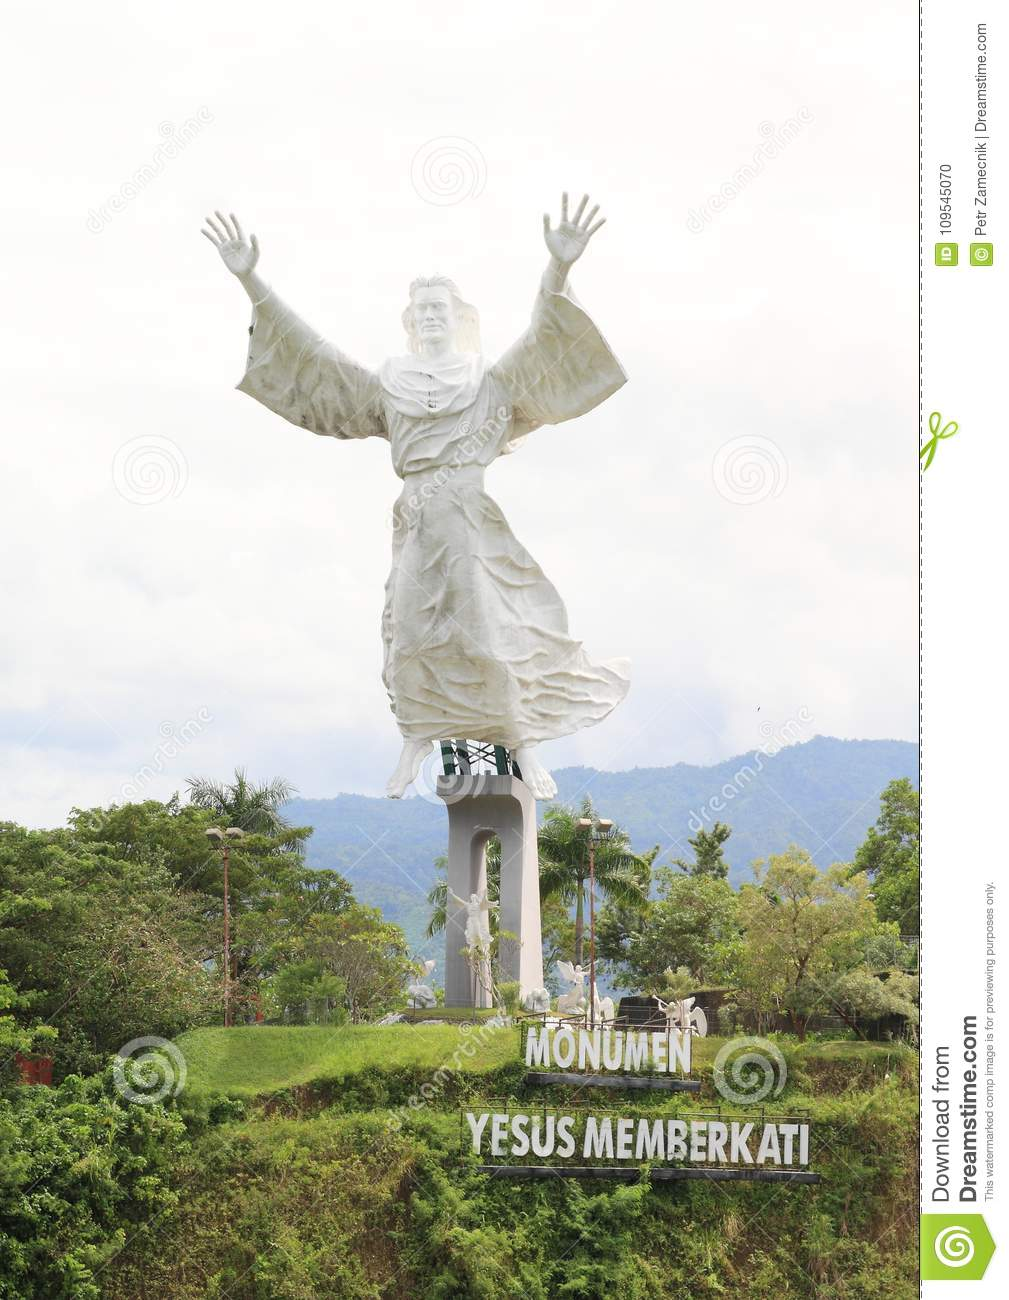 24 yesus photos free royalty free stock photos from dreamstime https www dreamstime com monumen yesus memberkati monumen yesus memberkati hudge white statue jesus as monument manado north sulawesi indonesia image109545070